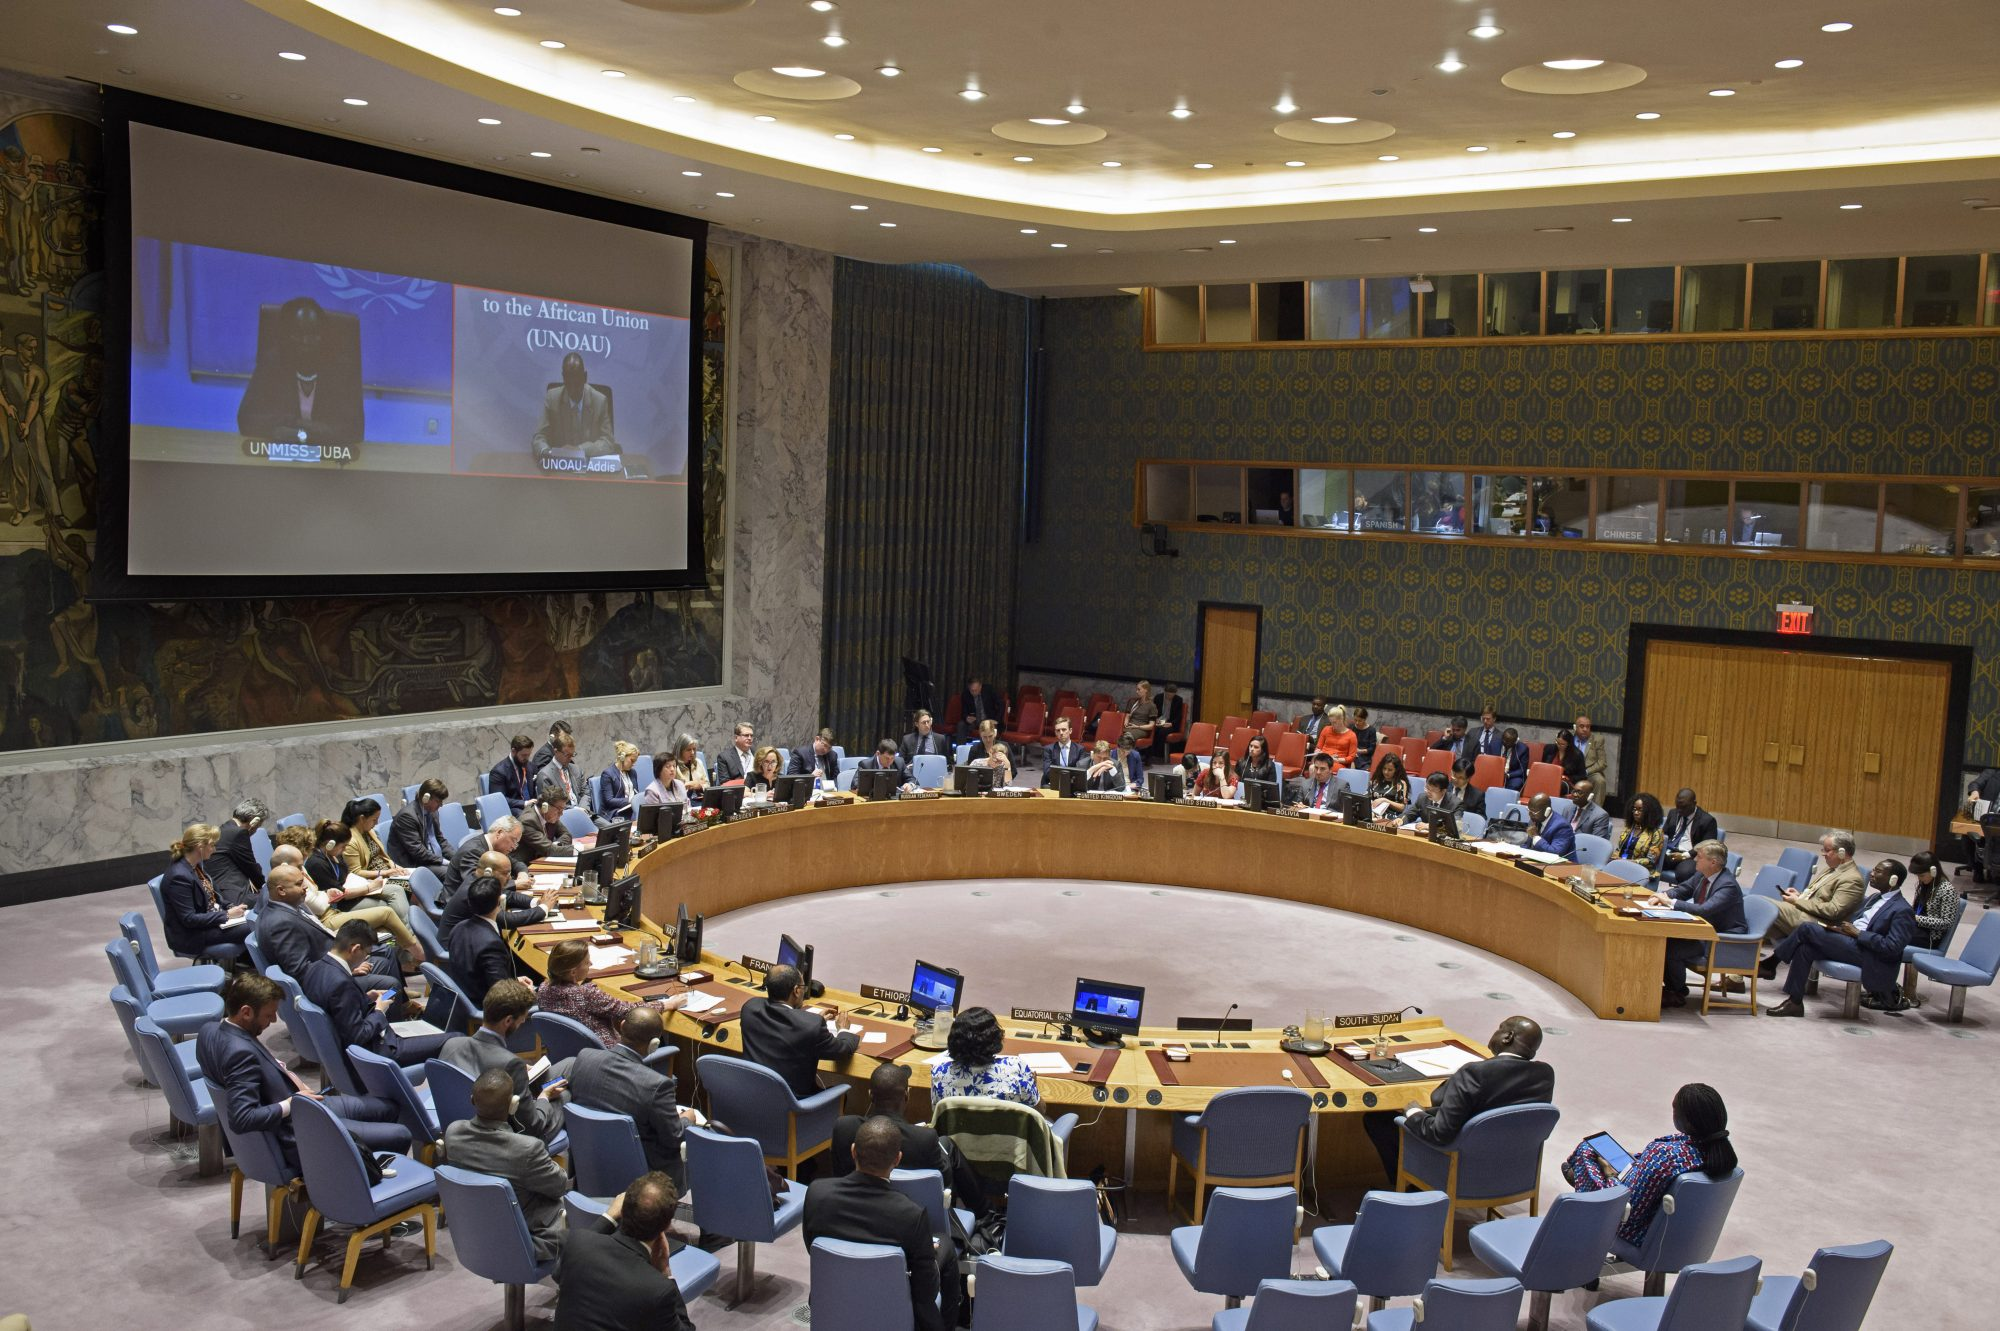 UN Security Council Briefing on South Sudan by Jackline Nasiwa